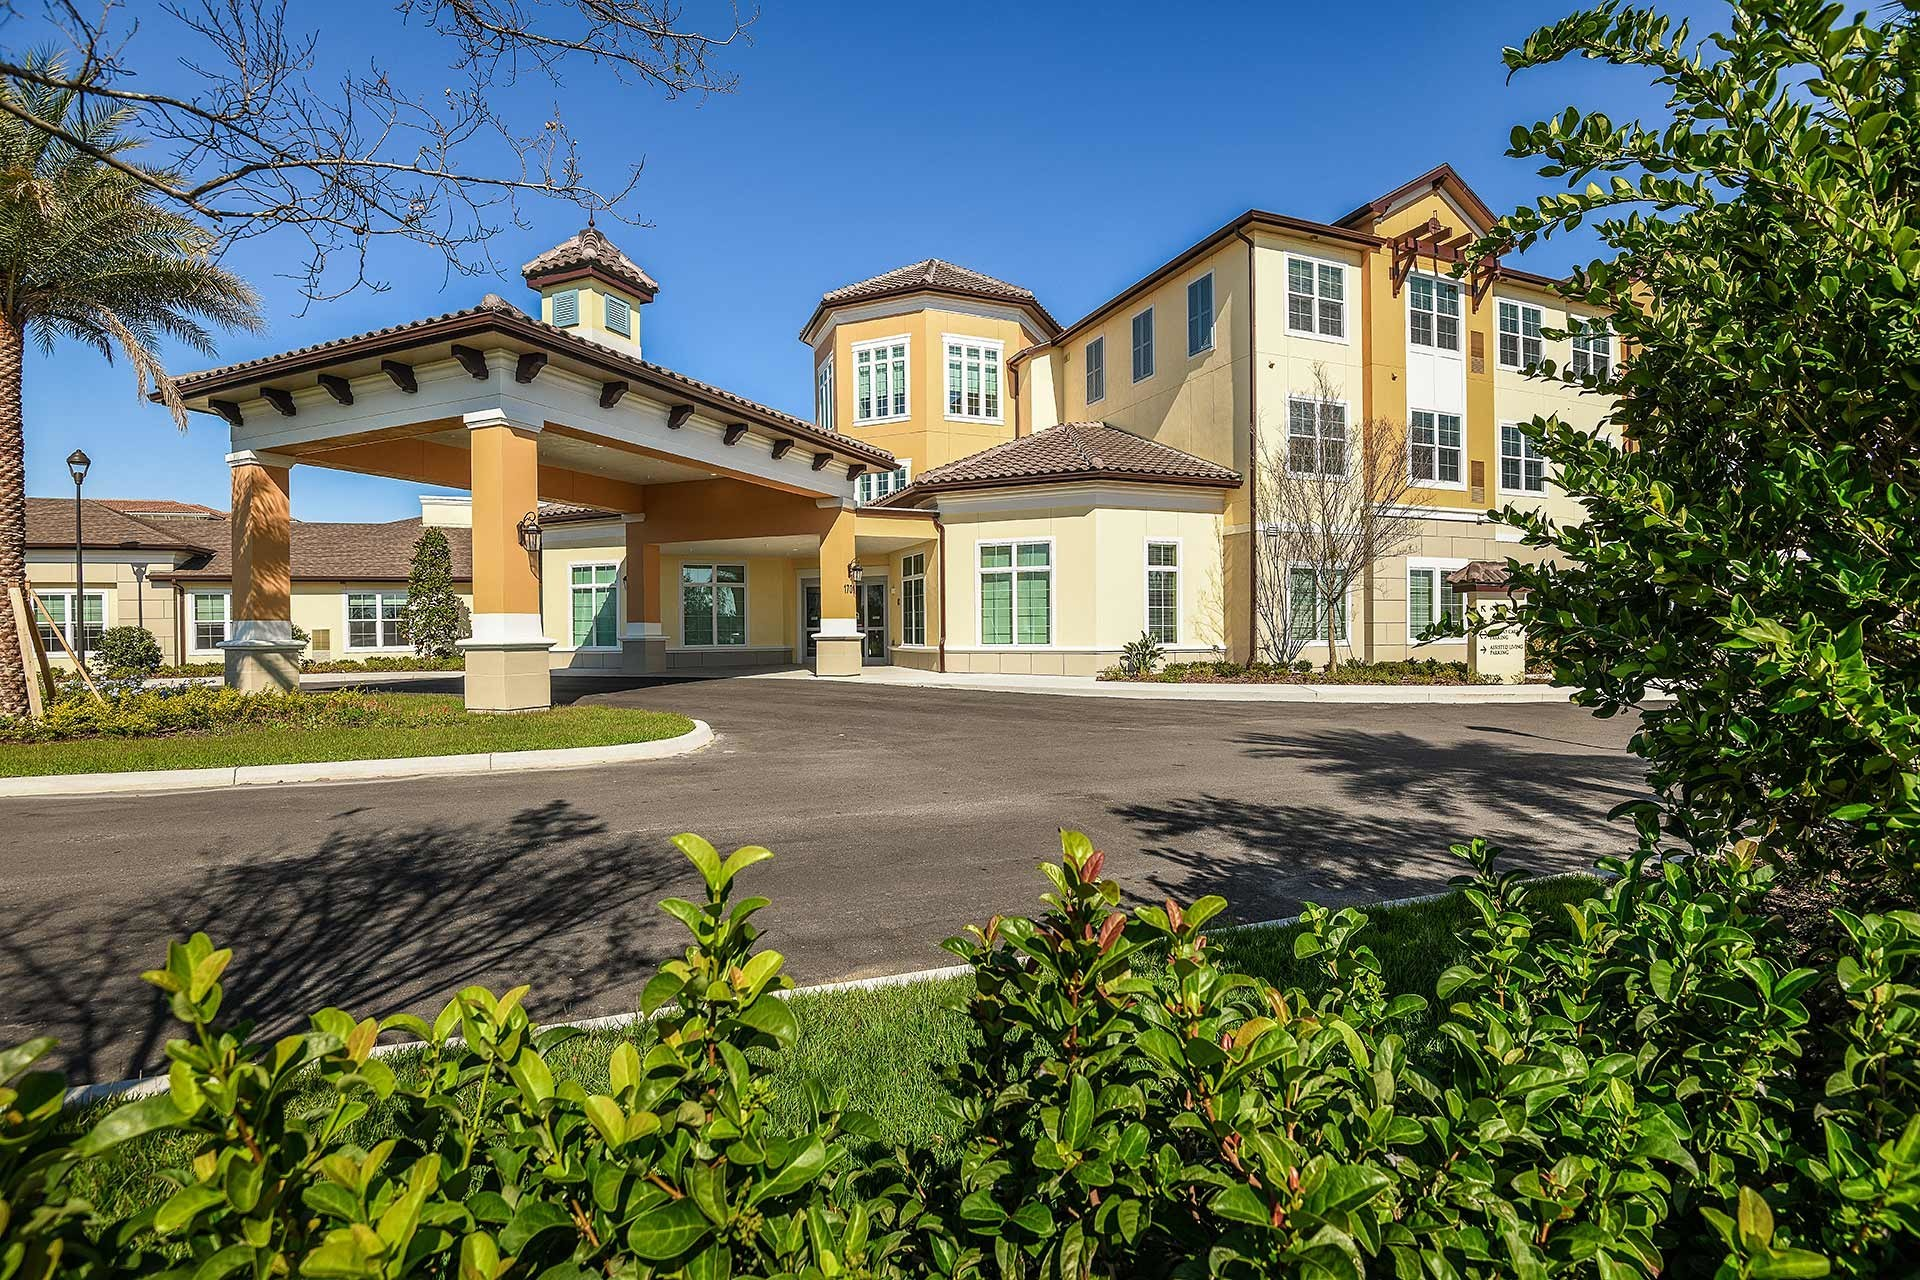 Sonata Senior Living Assumes Management of Assisted Living Community in Florida